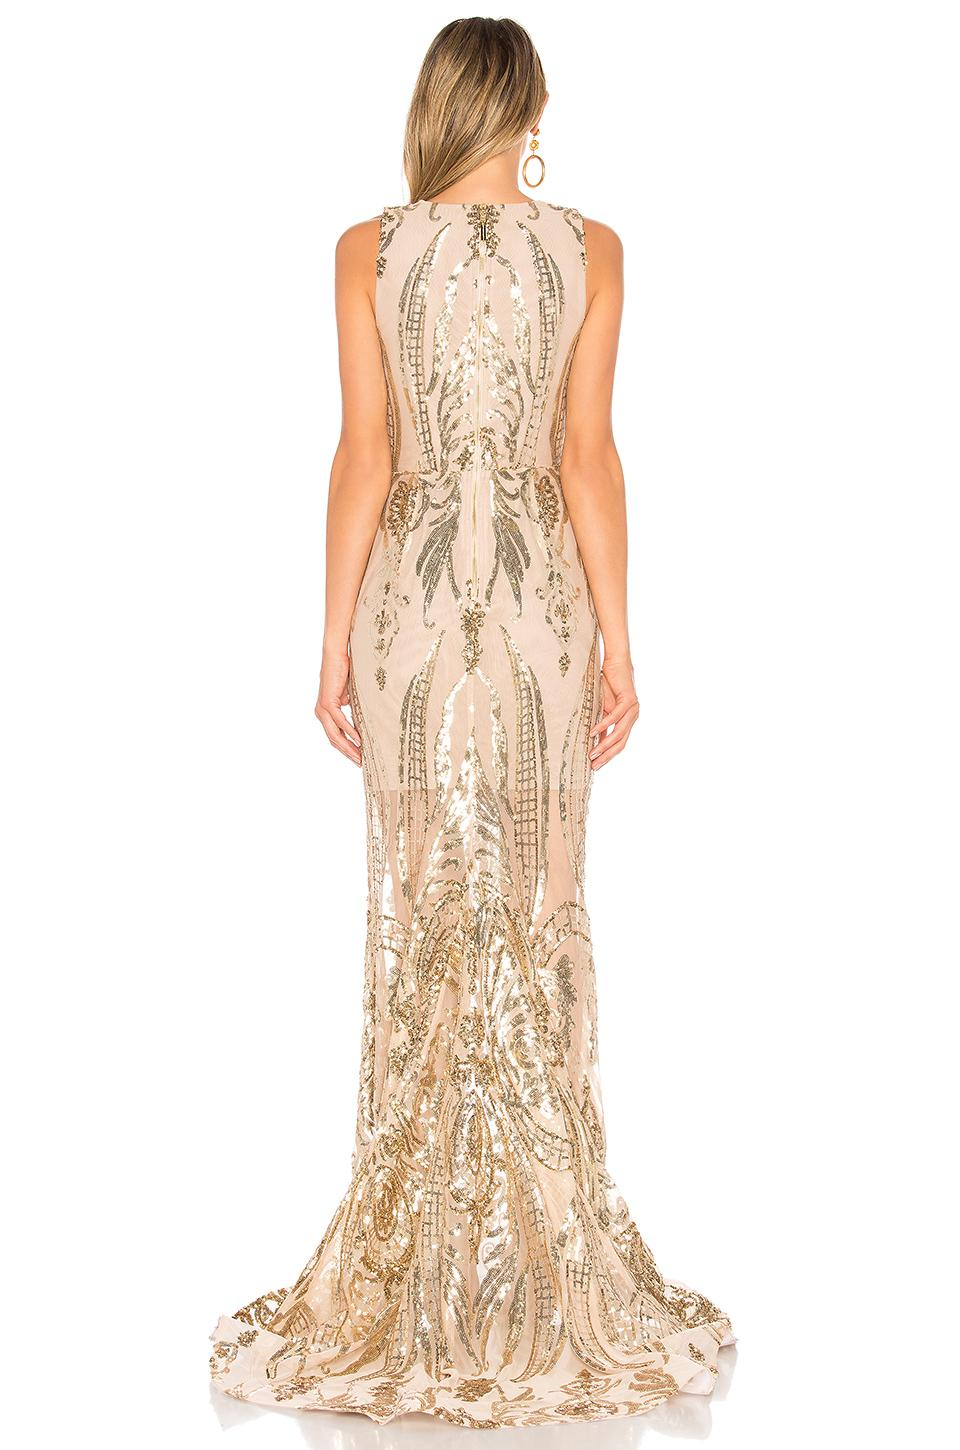 819846cc3f1 Bronx and Banco Ester Gold Gown in Metallic - Lyst